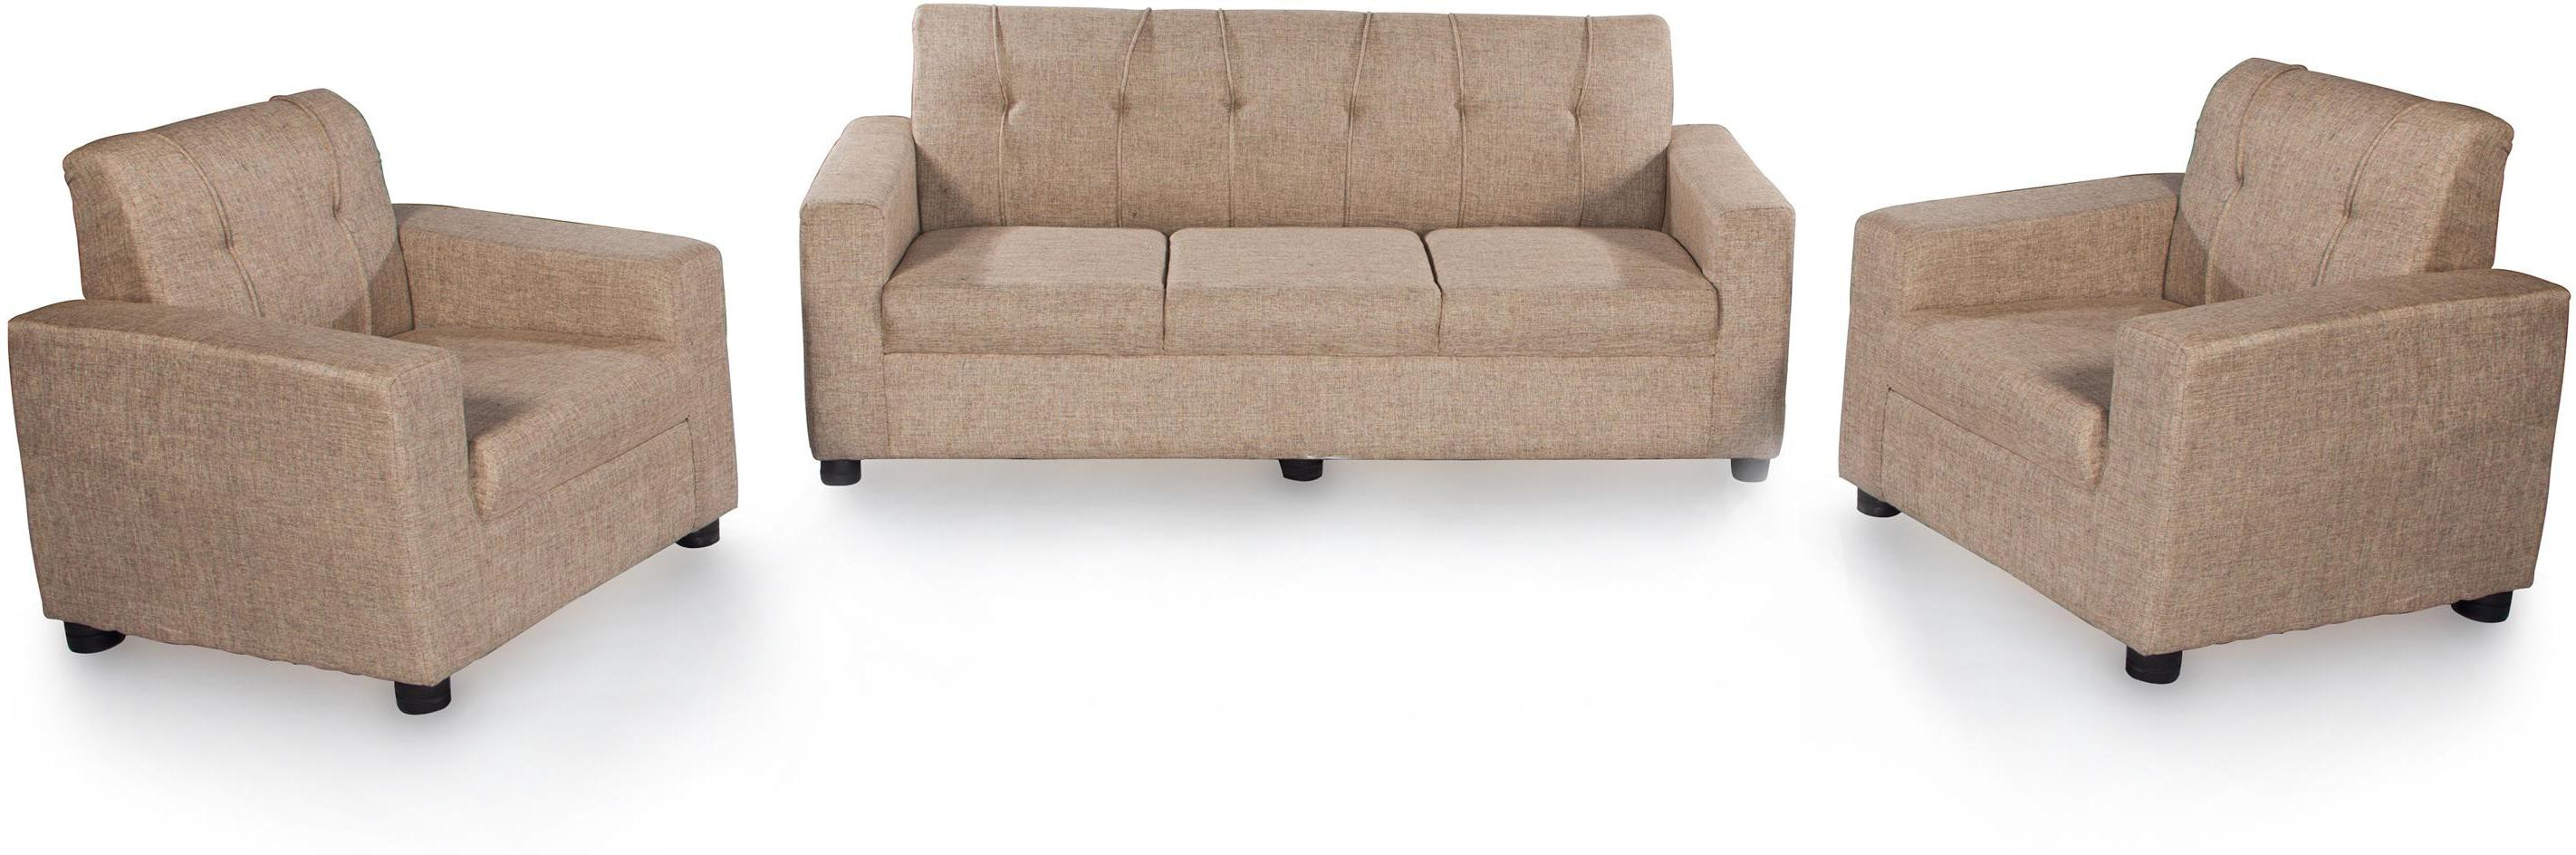 View Furnicity Fabric 3 + 1 + 1 Beige Sofa Set(Configuration - Straight) Furniture (Furnicity)